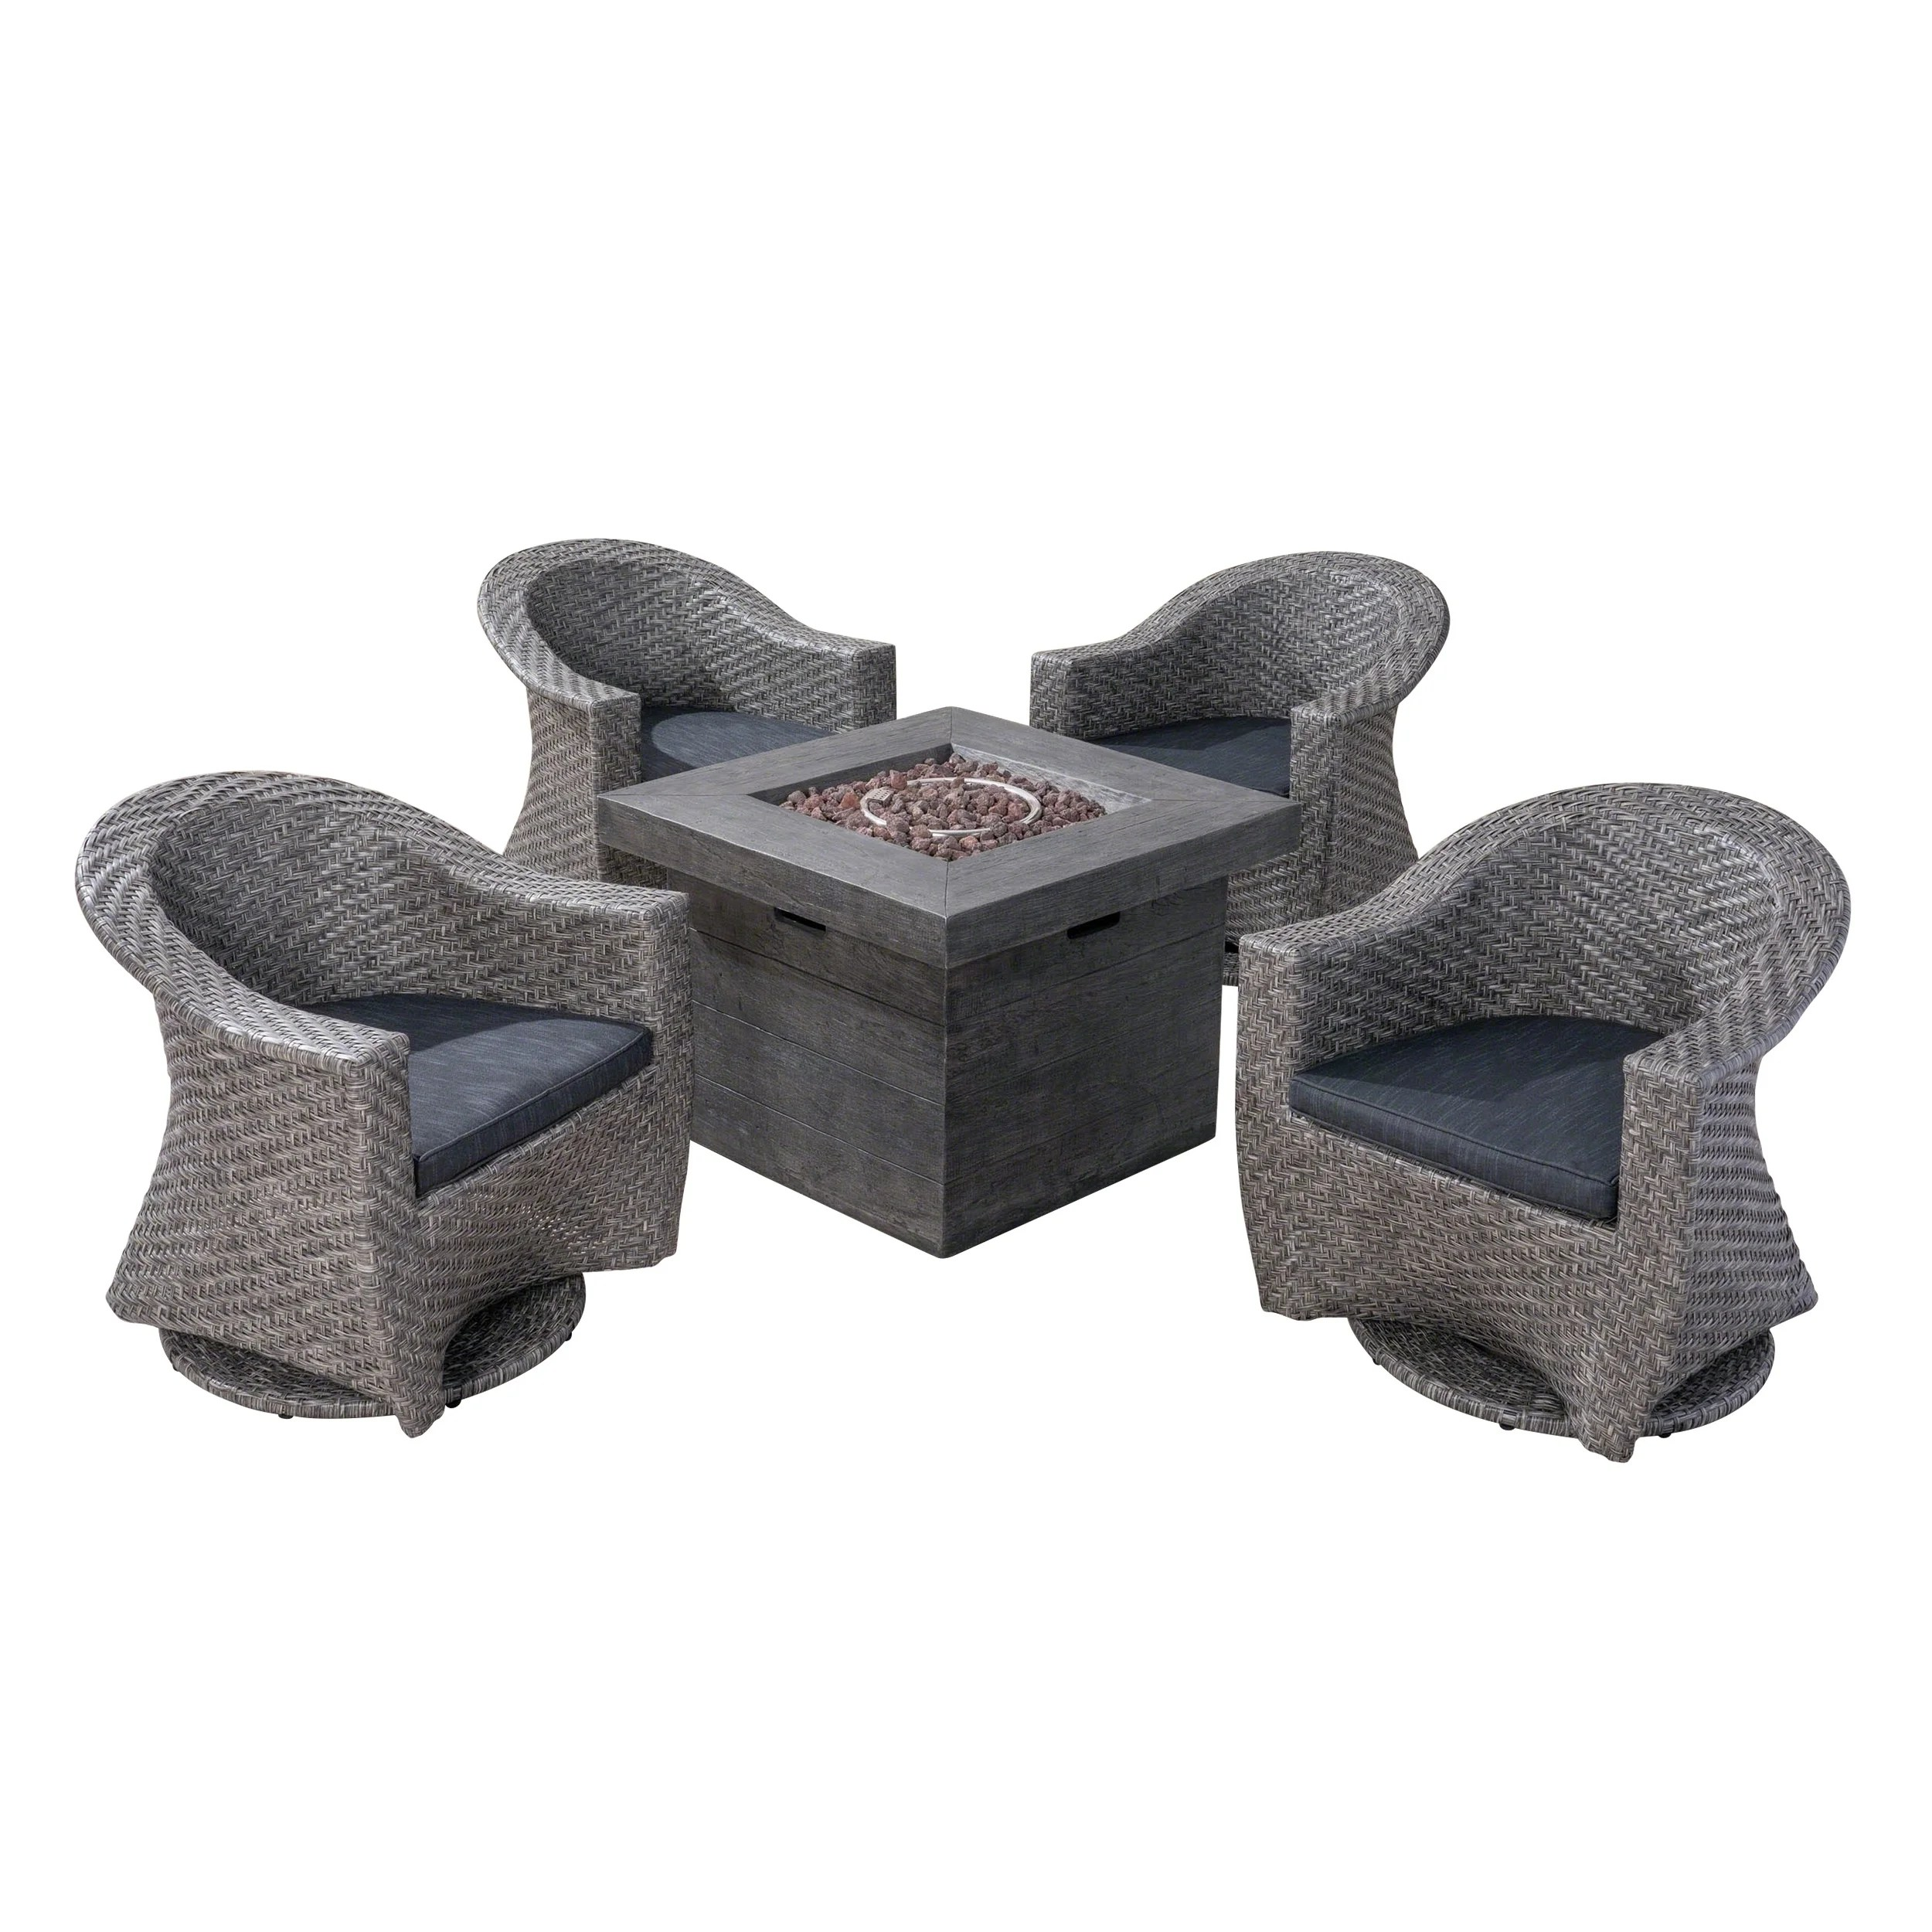 Wicker Swivel Chair Savoy Outdoor 4 Seater Wicker Swivel Chairs With Fire Pit Set Set Of 4 By Christopher Knight Home